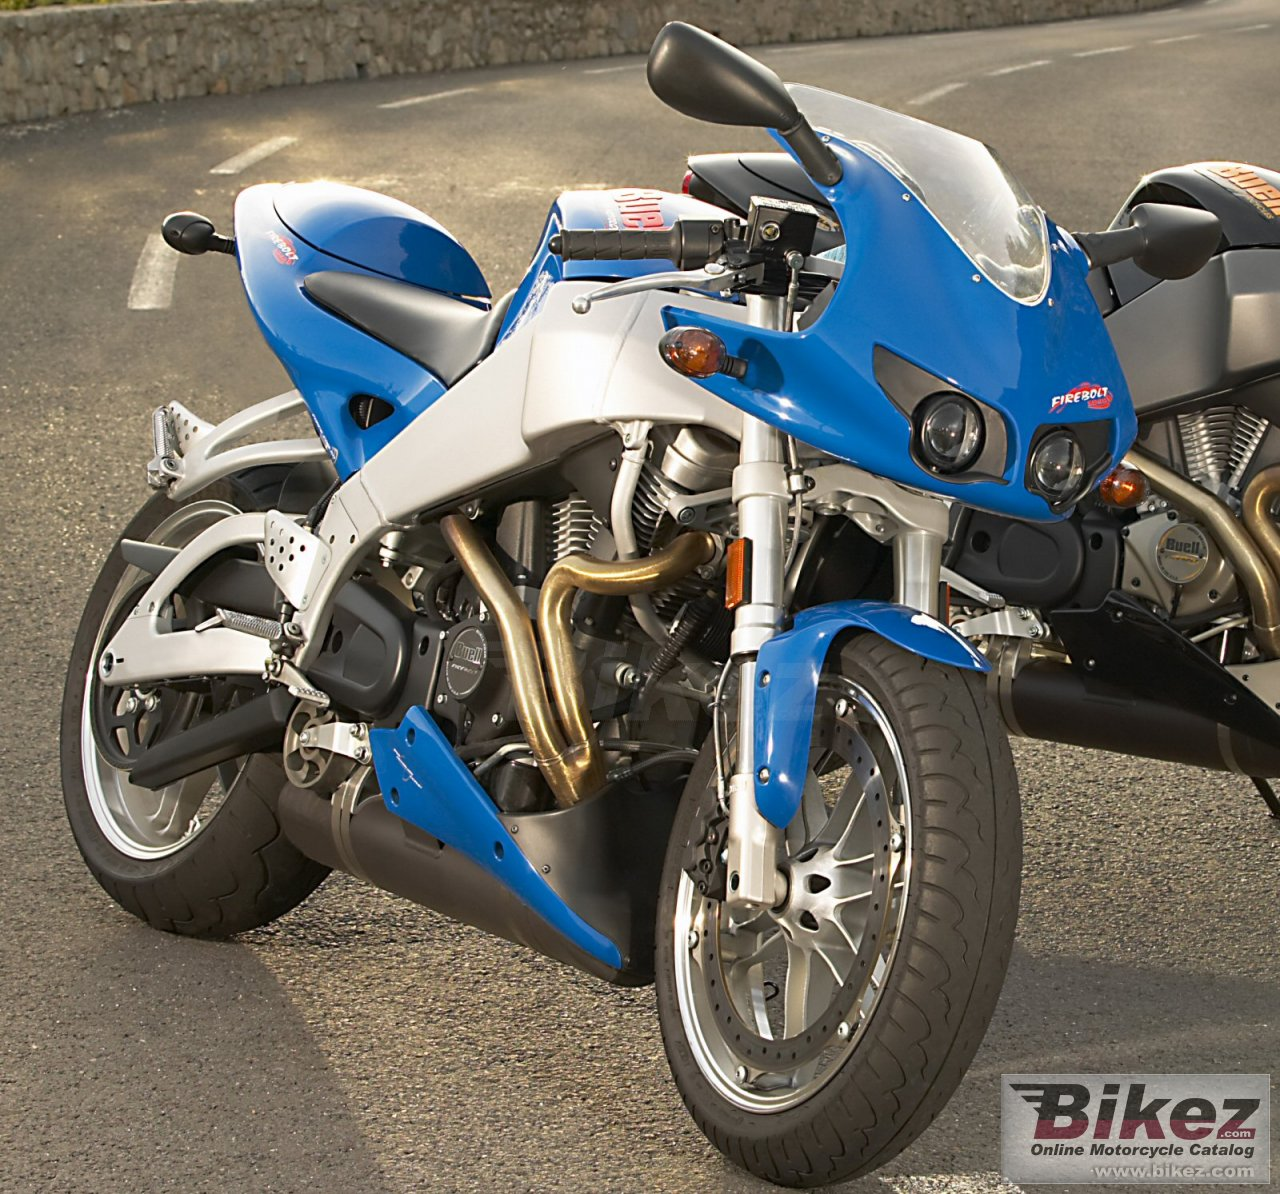 Big Buell firebolt xb9r picture and wallpaper from Bikez.com